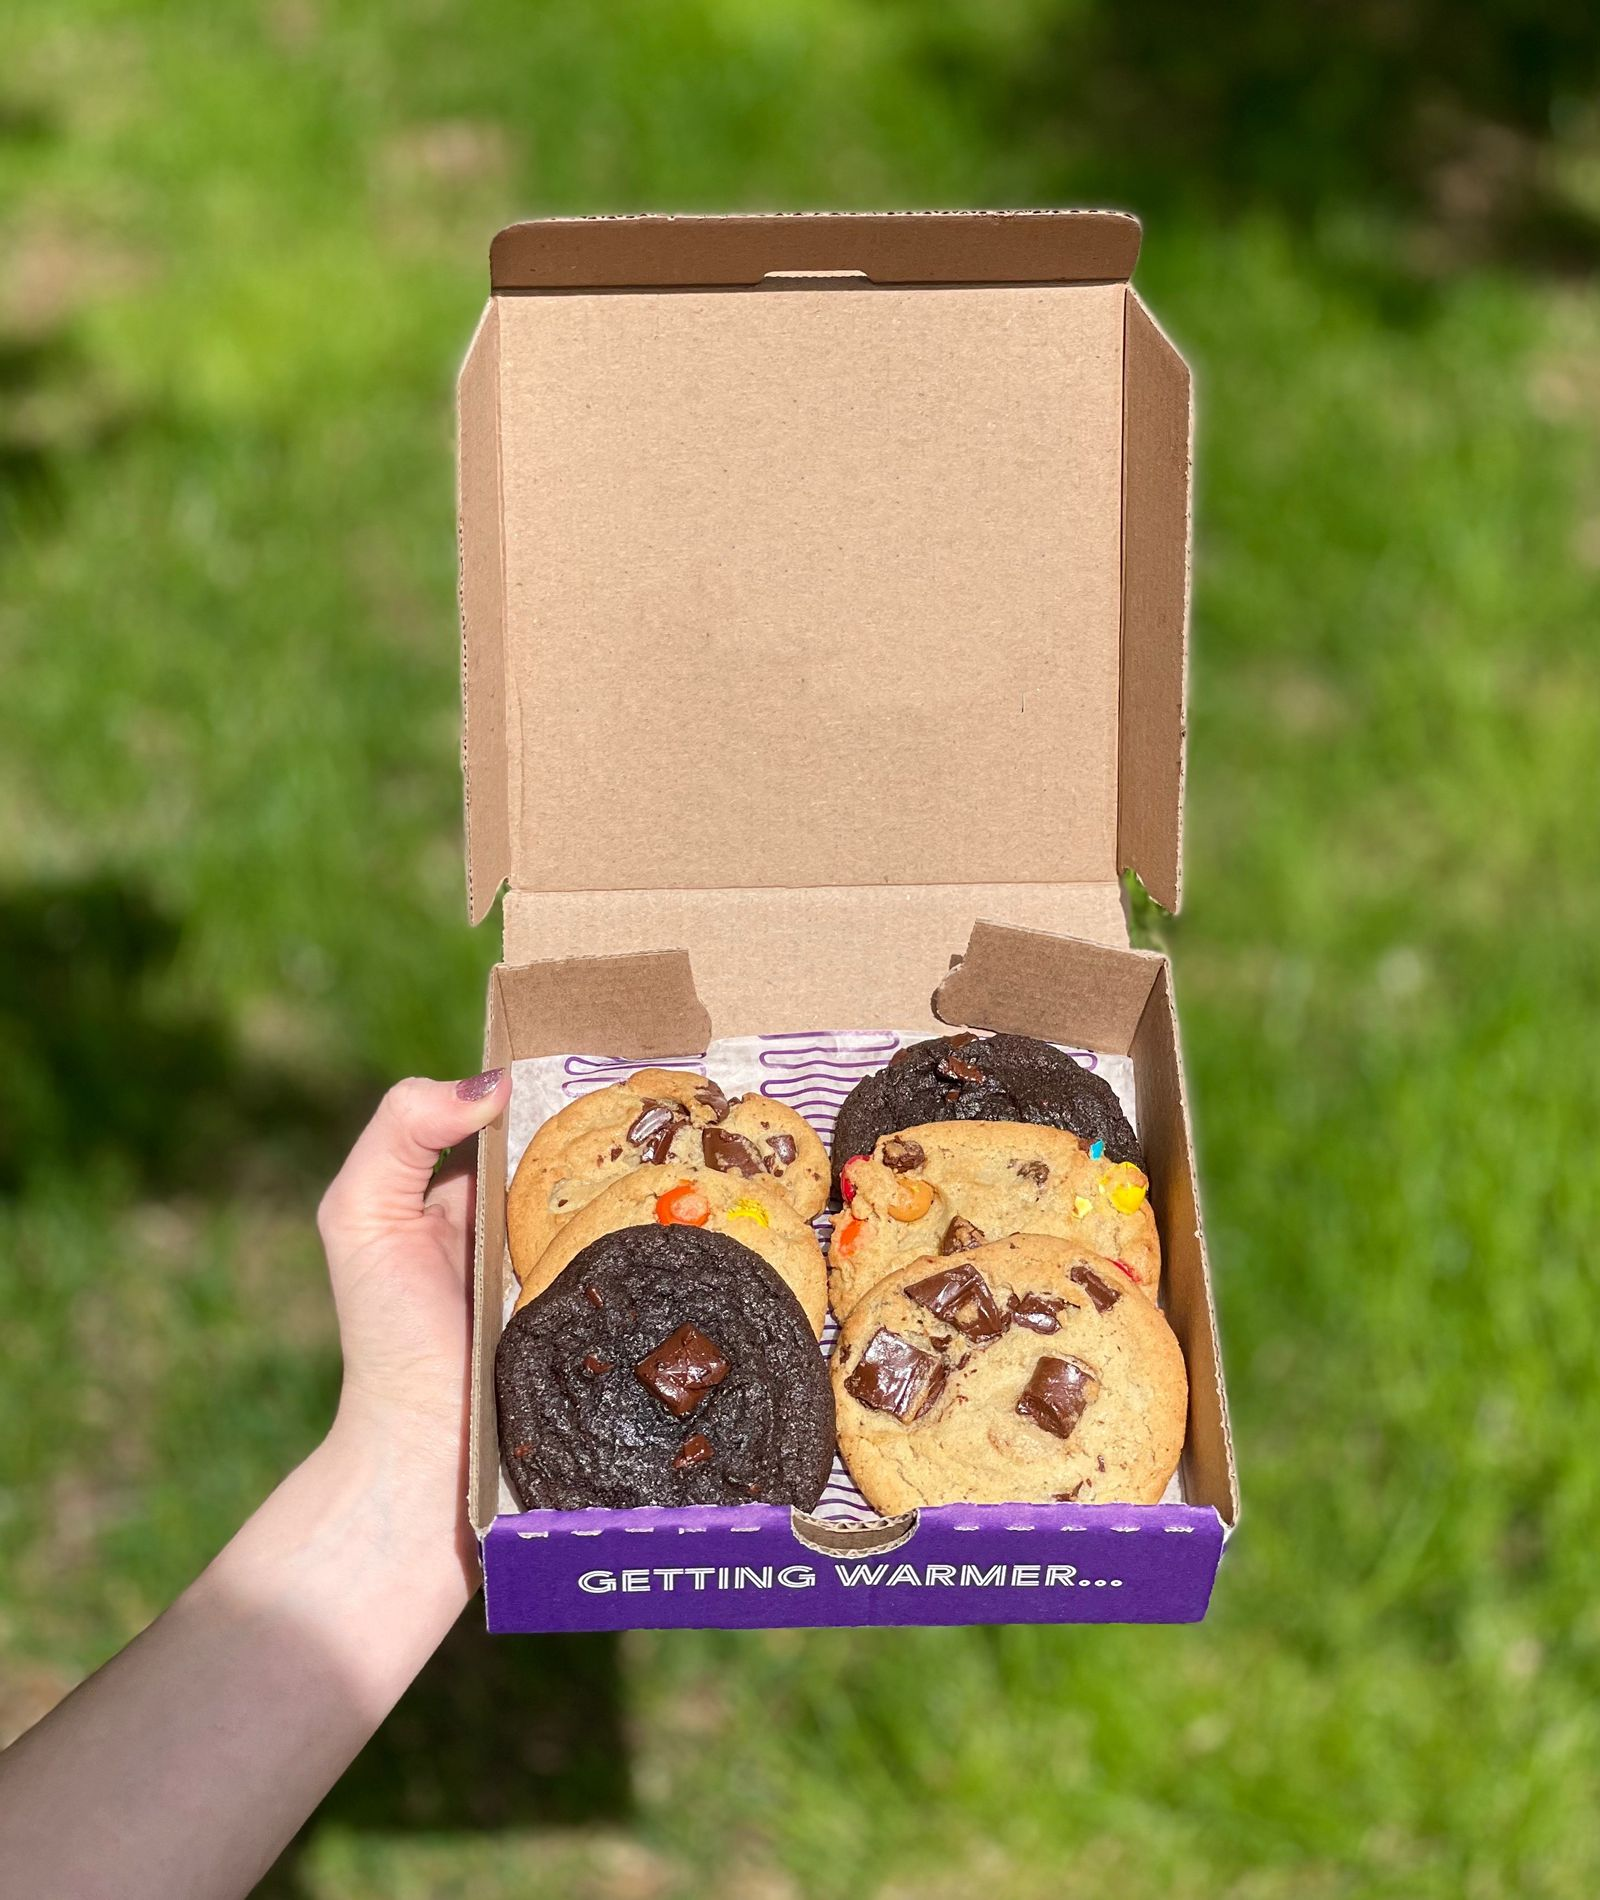 Insomnia Cookies Celebrates the Opening of Its 200th Location